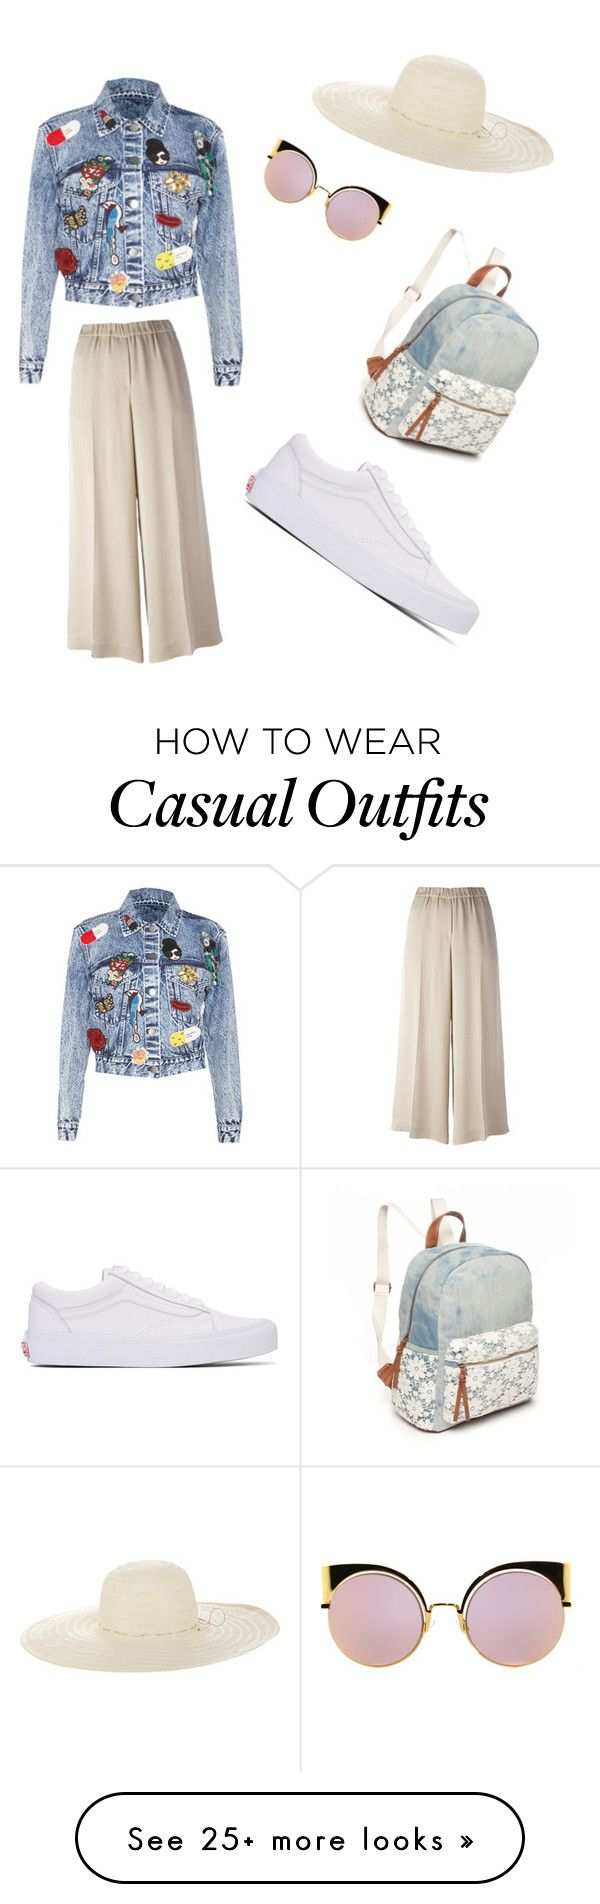 """Casual"" by annacoufal on Polyvore featuring Alice + Olivia, Fendi, Theory, Vans, Jennifer Ouellette and Red Camel"